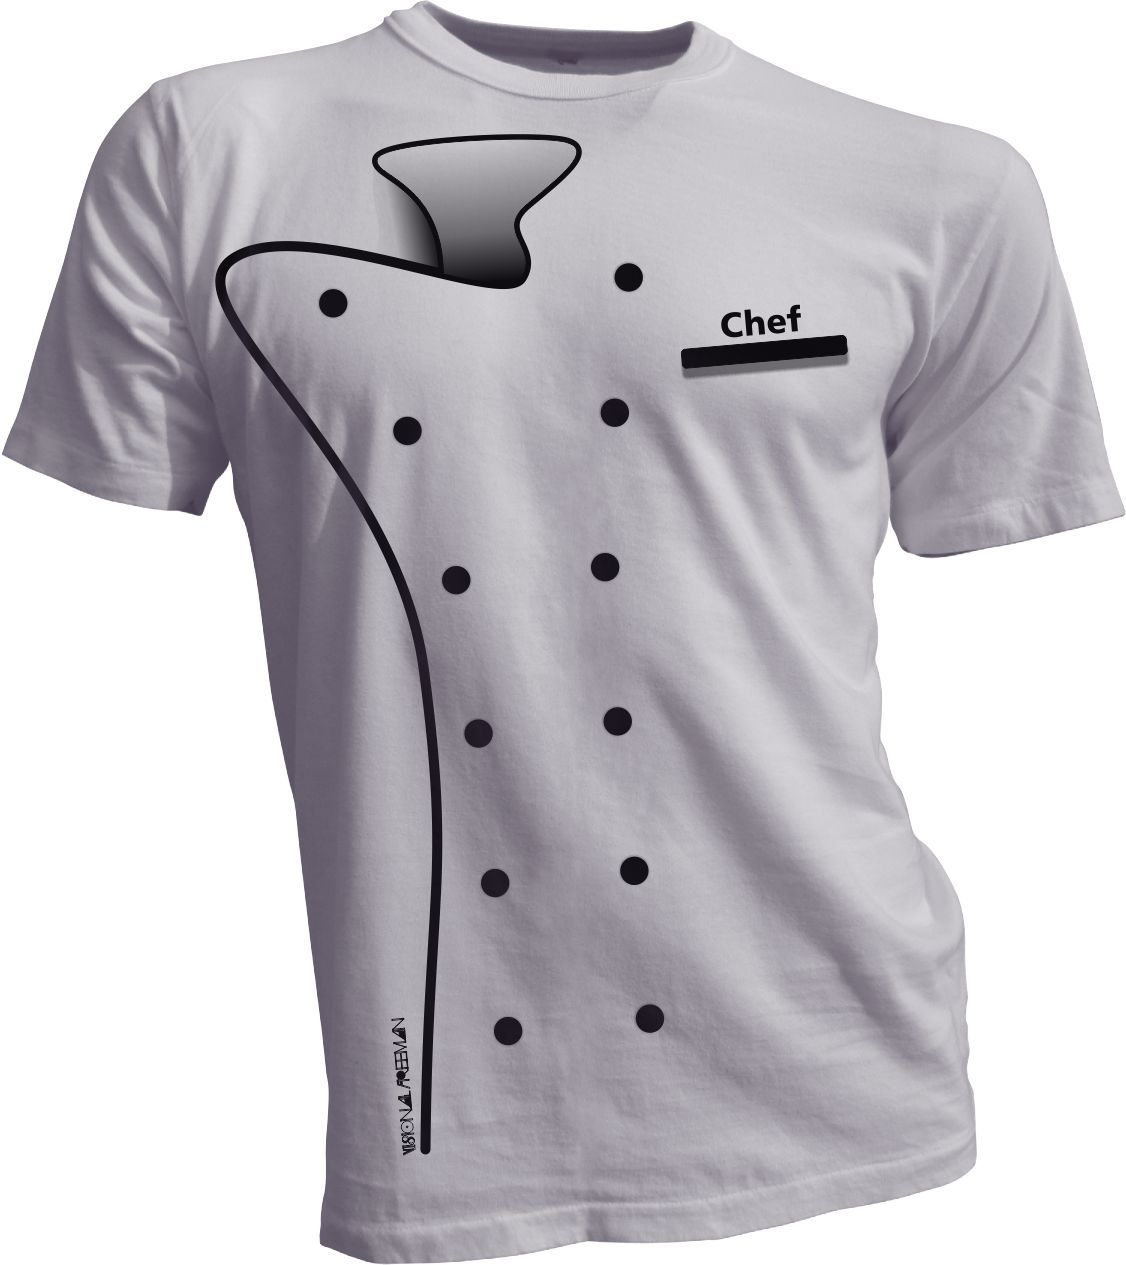 Chef T-shirt by Visional Freeman Print on 100% cotton